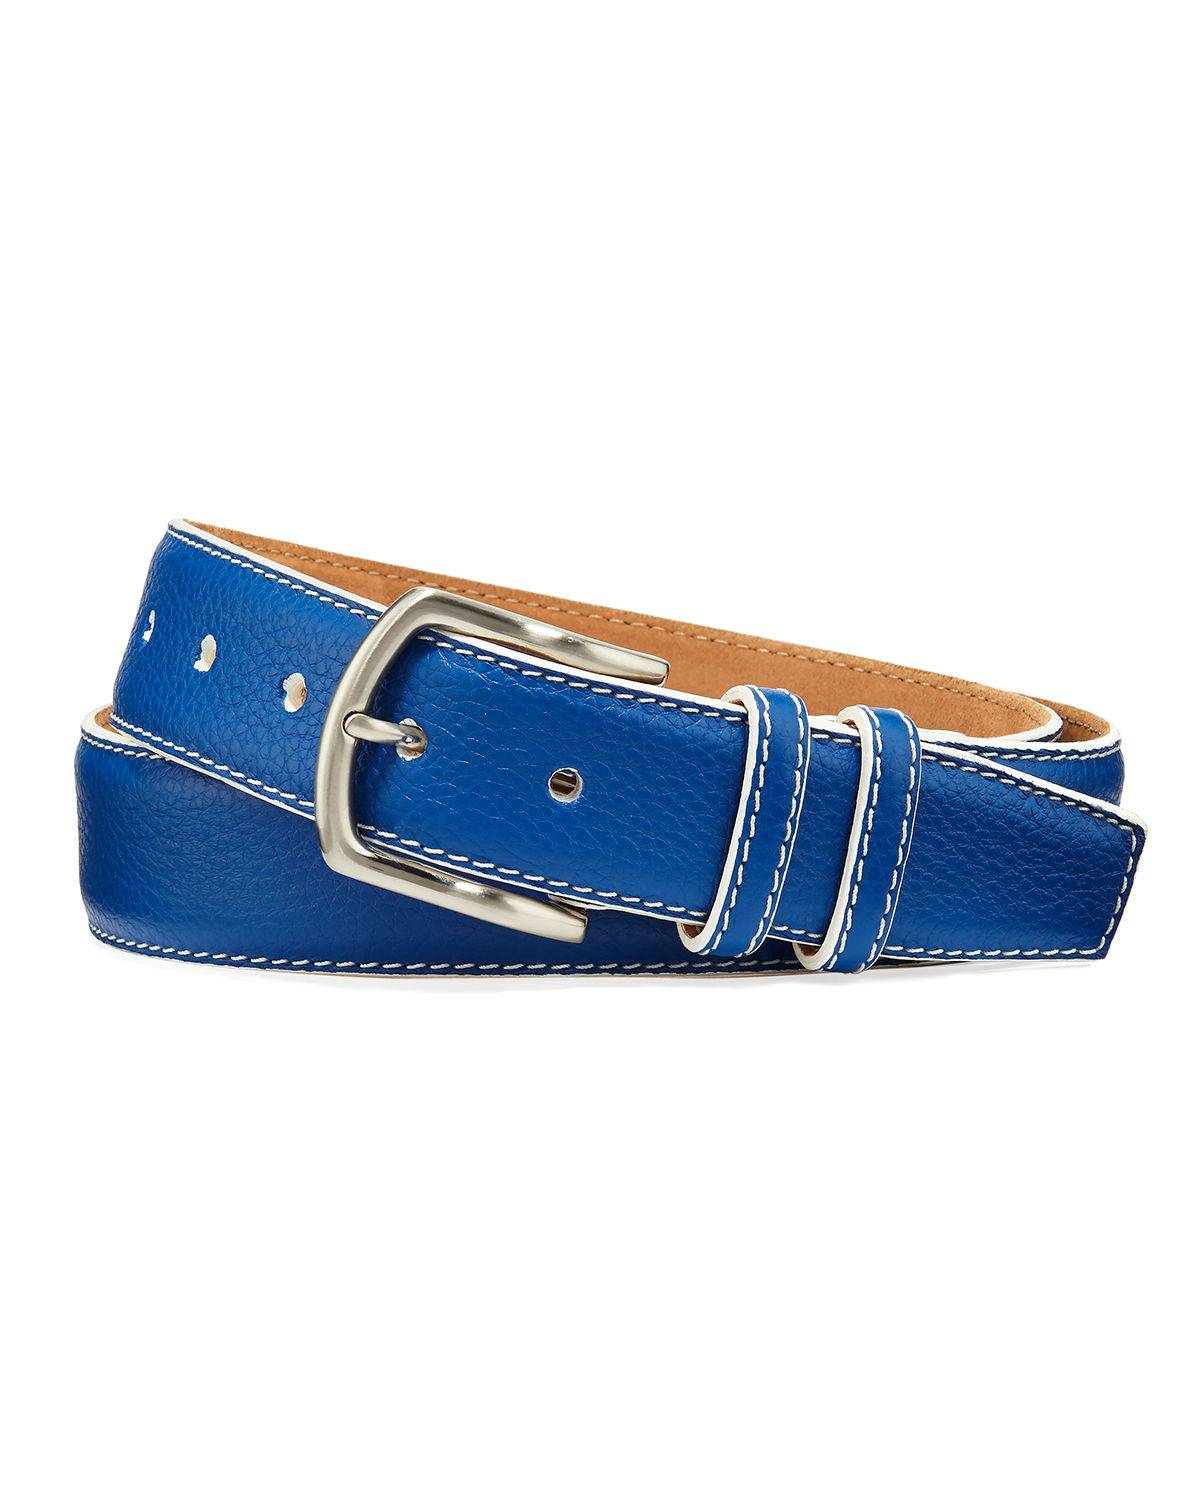 W. Kleinberg Men's South Beach Pebbled Leather Belt  - male - COBALT - Size: 42in / 105cm